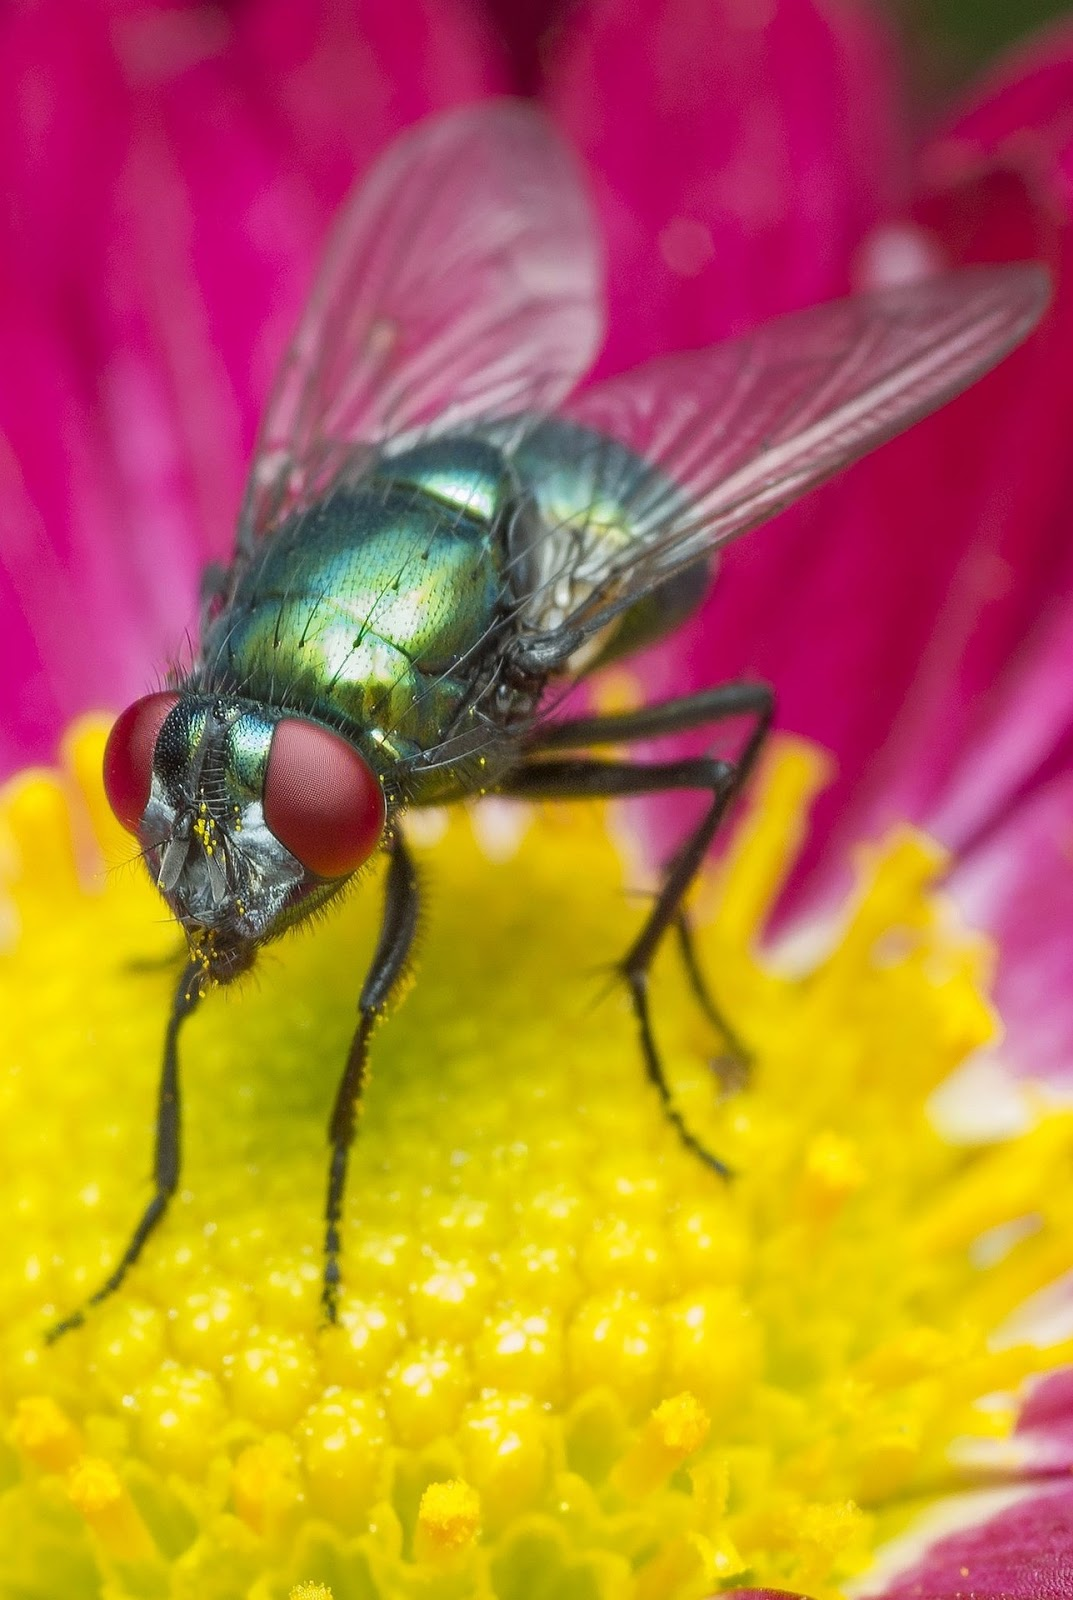 Picture of a fly up close.